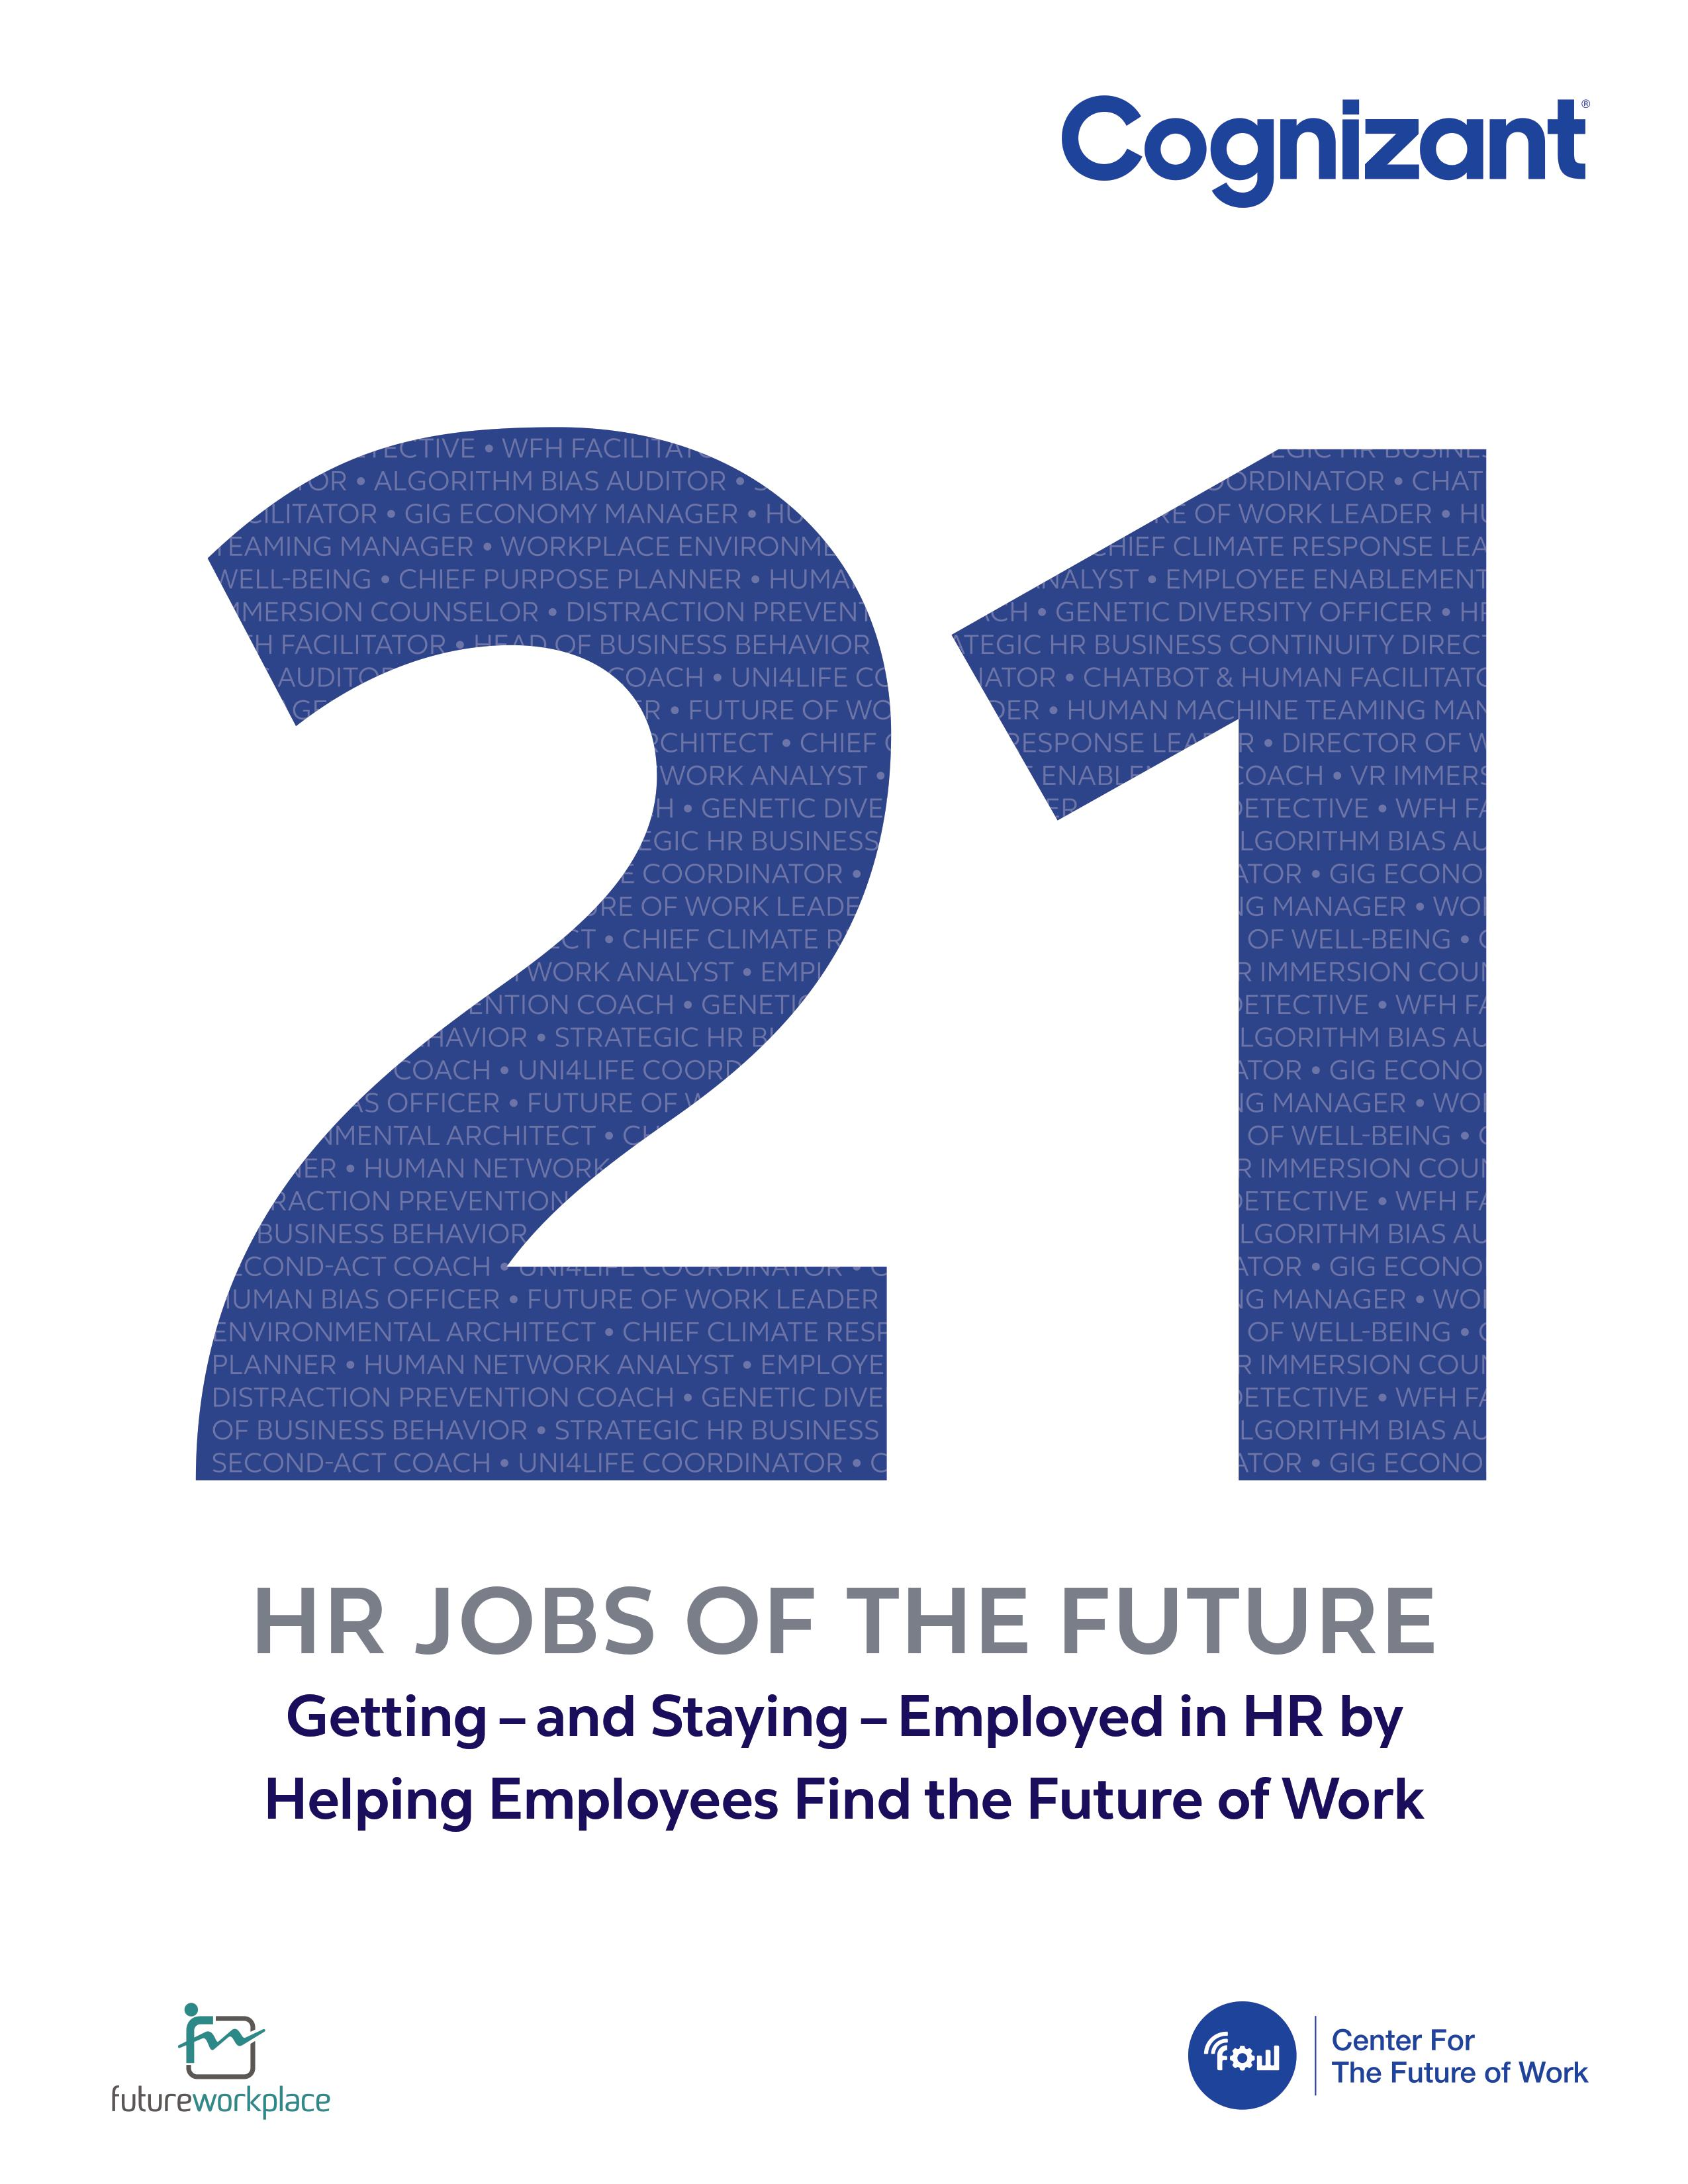 21 HR Jobs of the Future